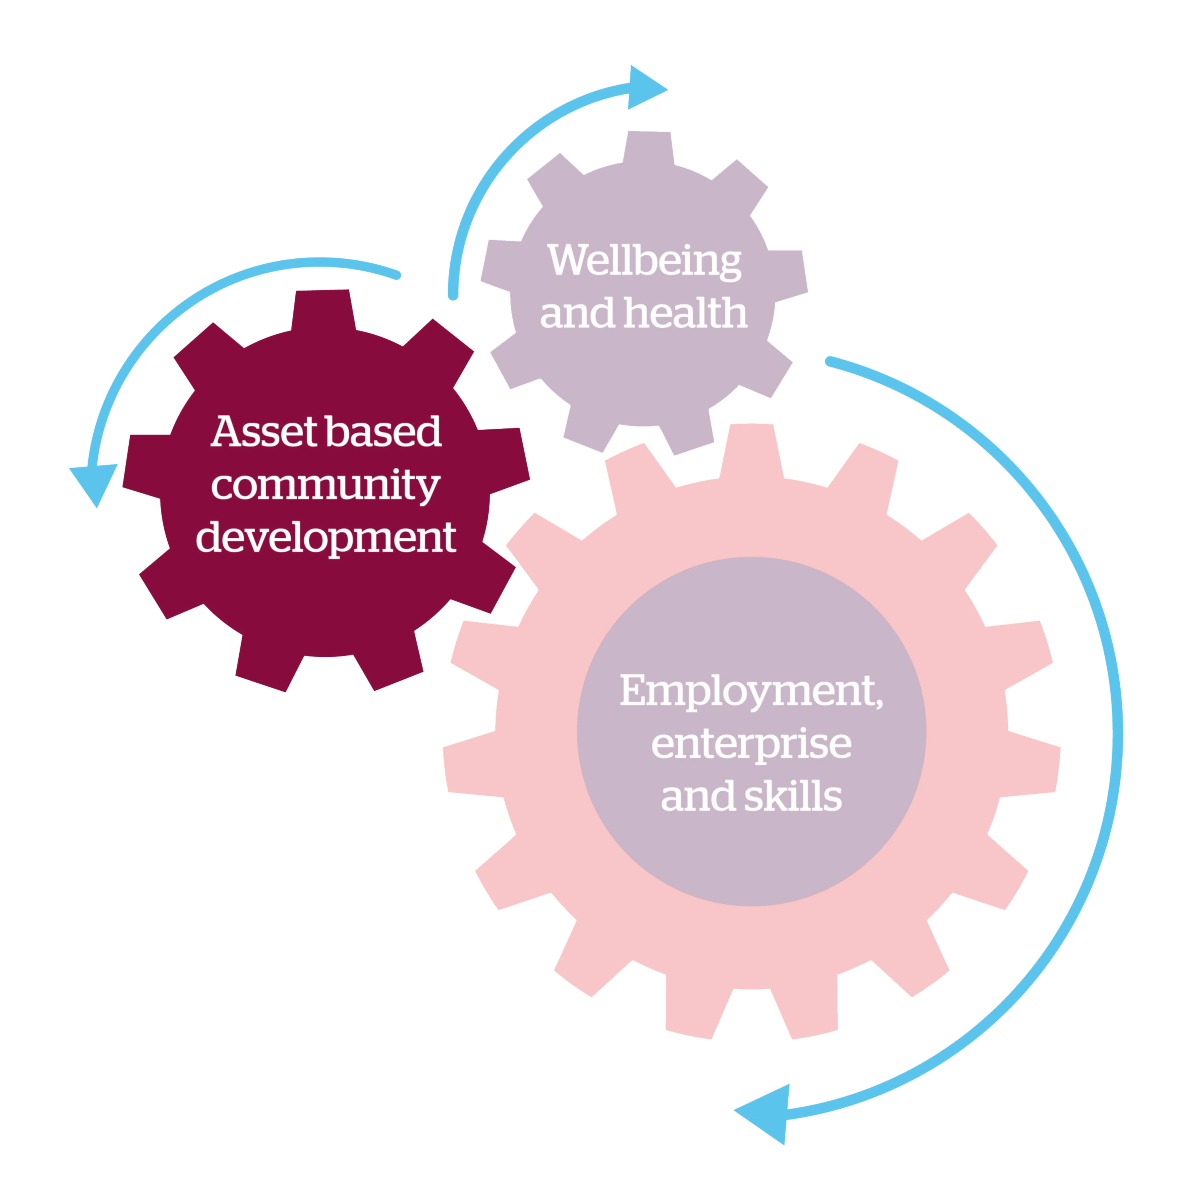 asset based community development cog diagram